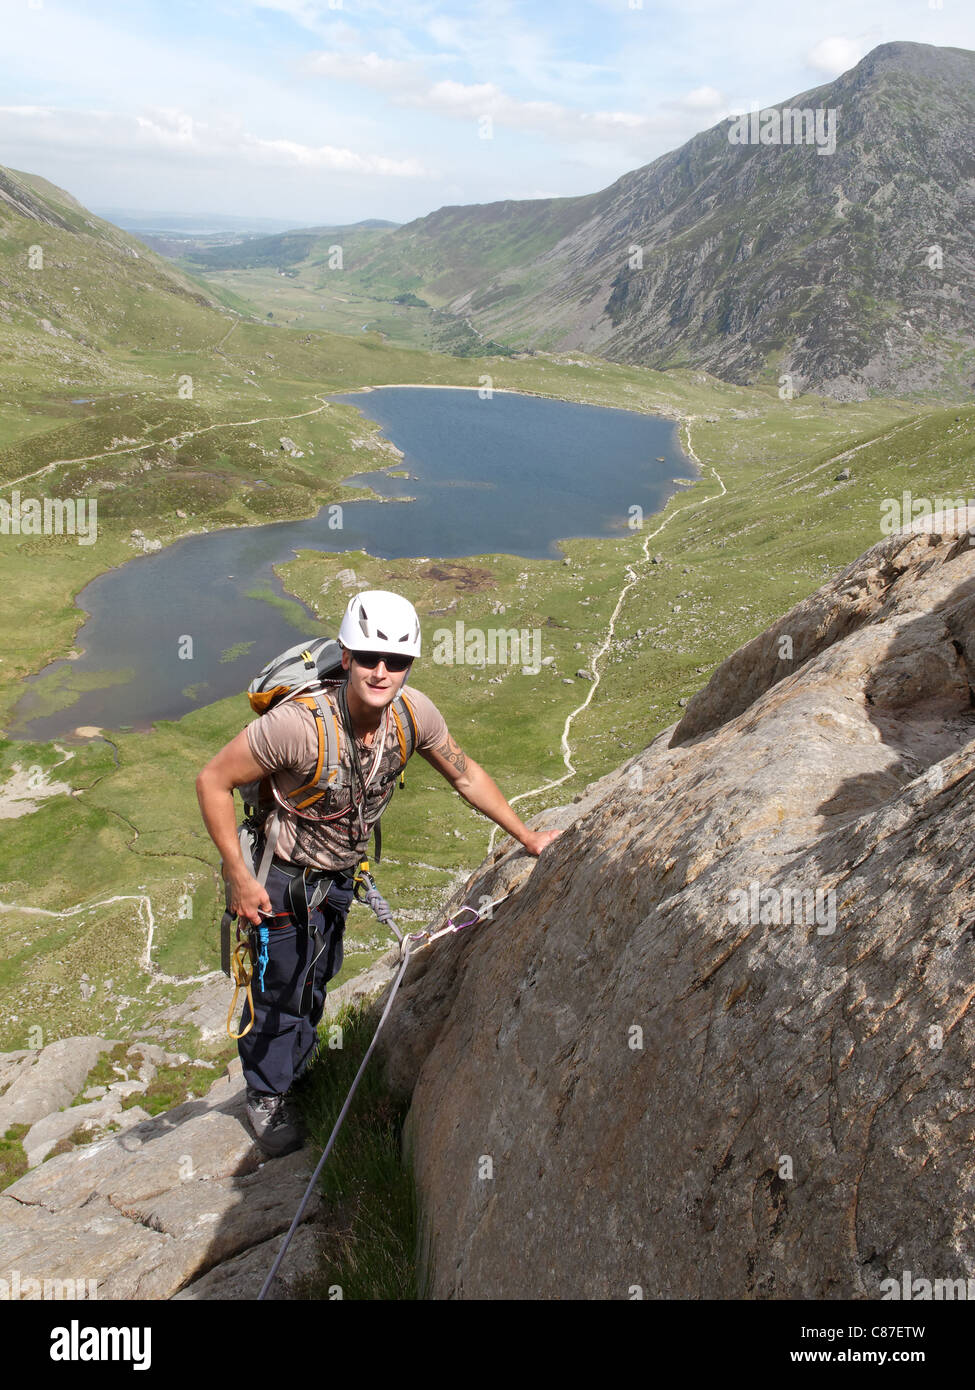 A climber on the Upper Idwal continuation scramble, Snowdonia - Stock Image